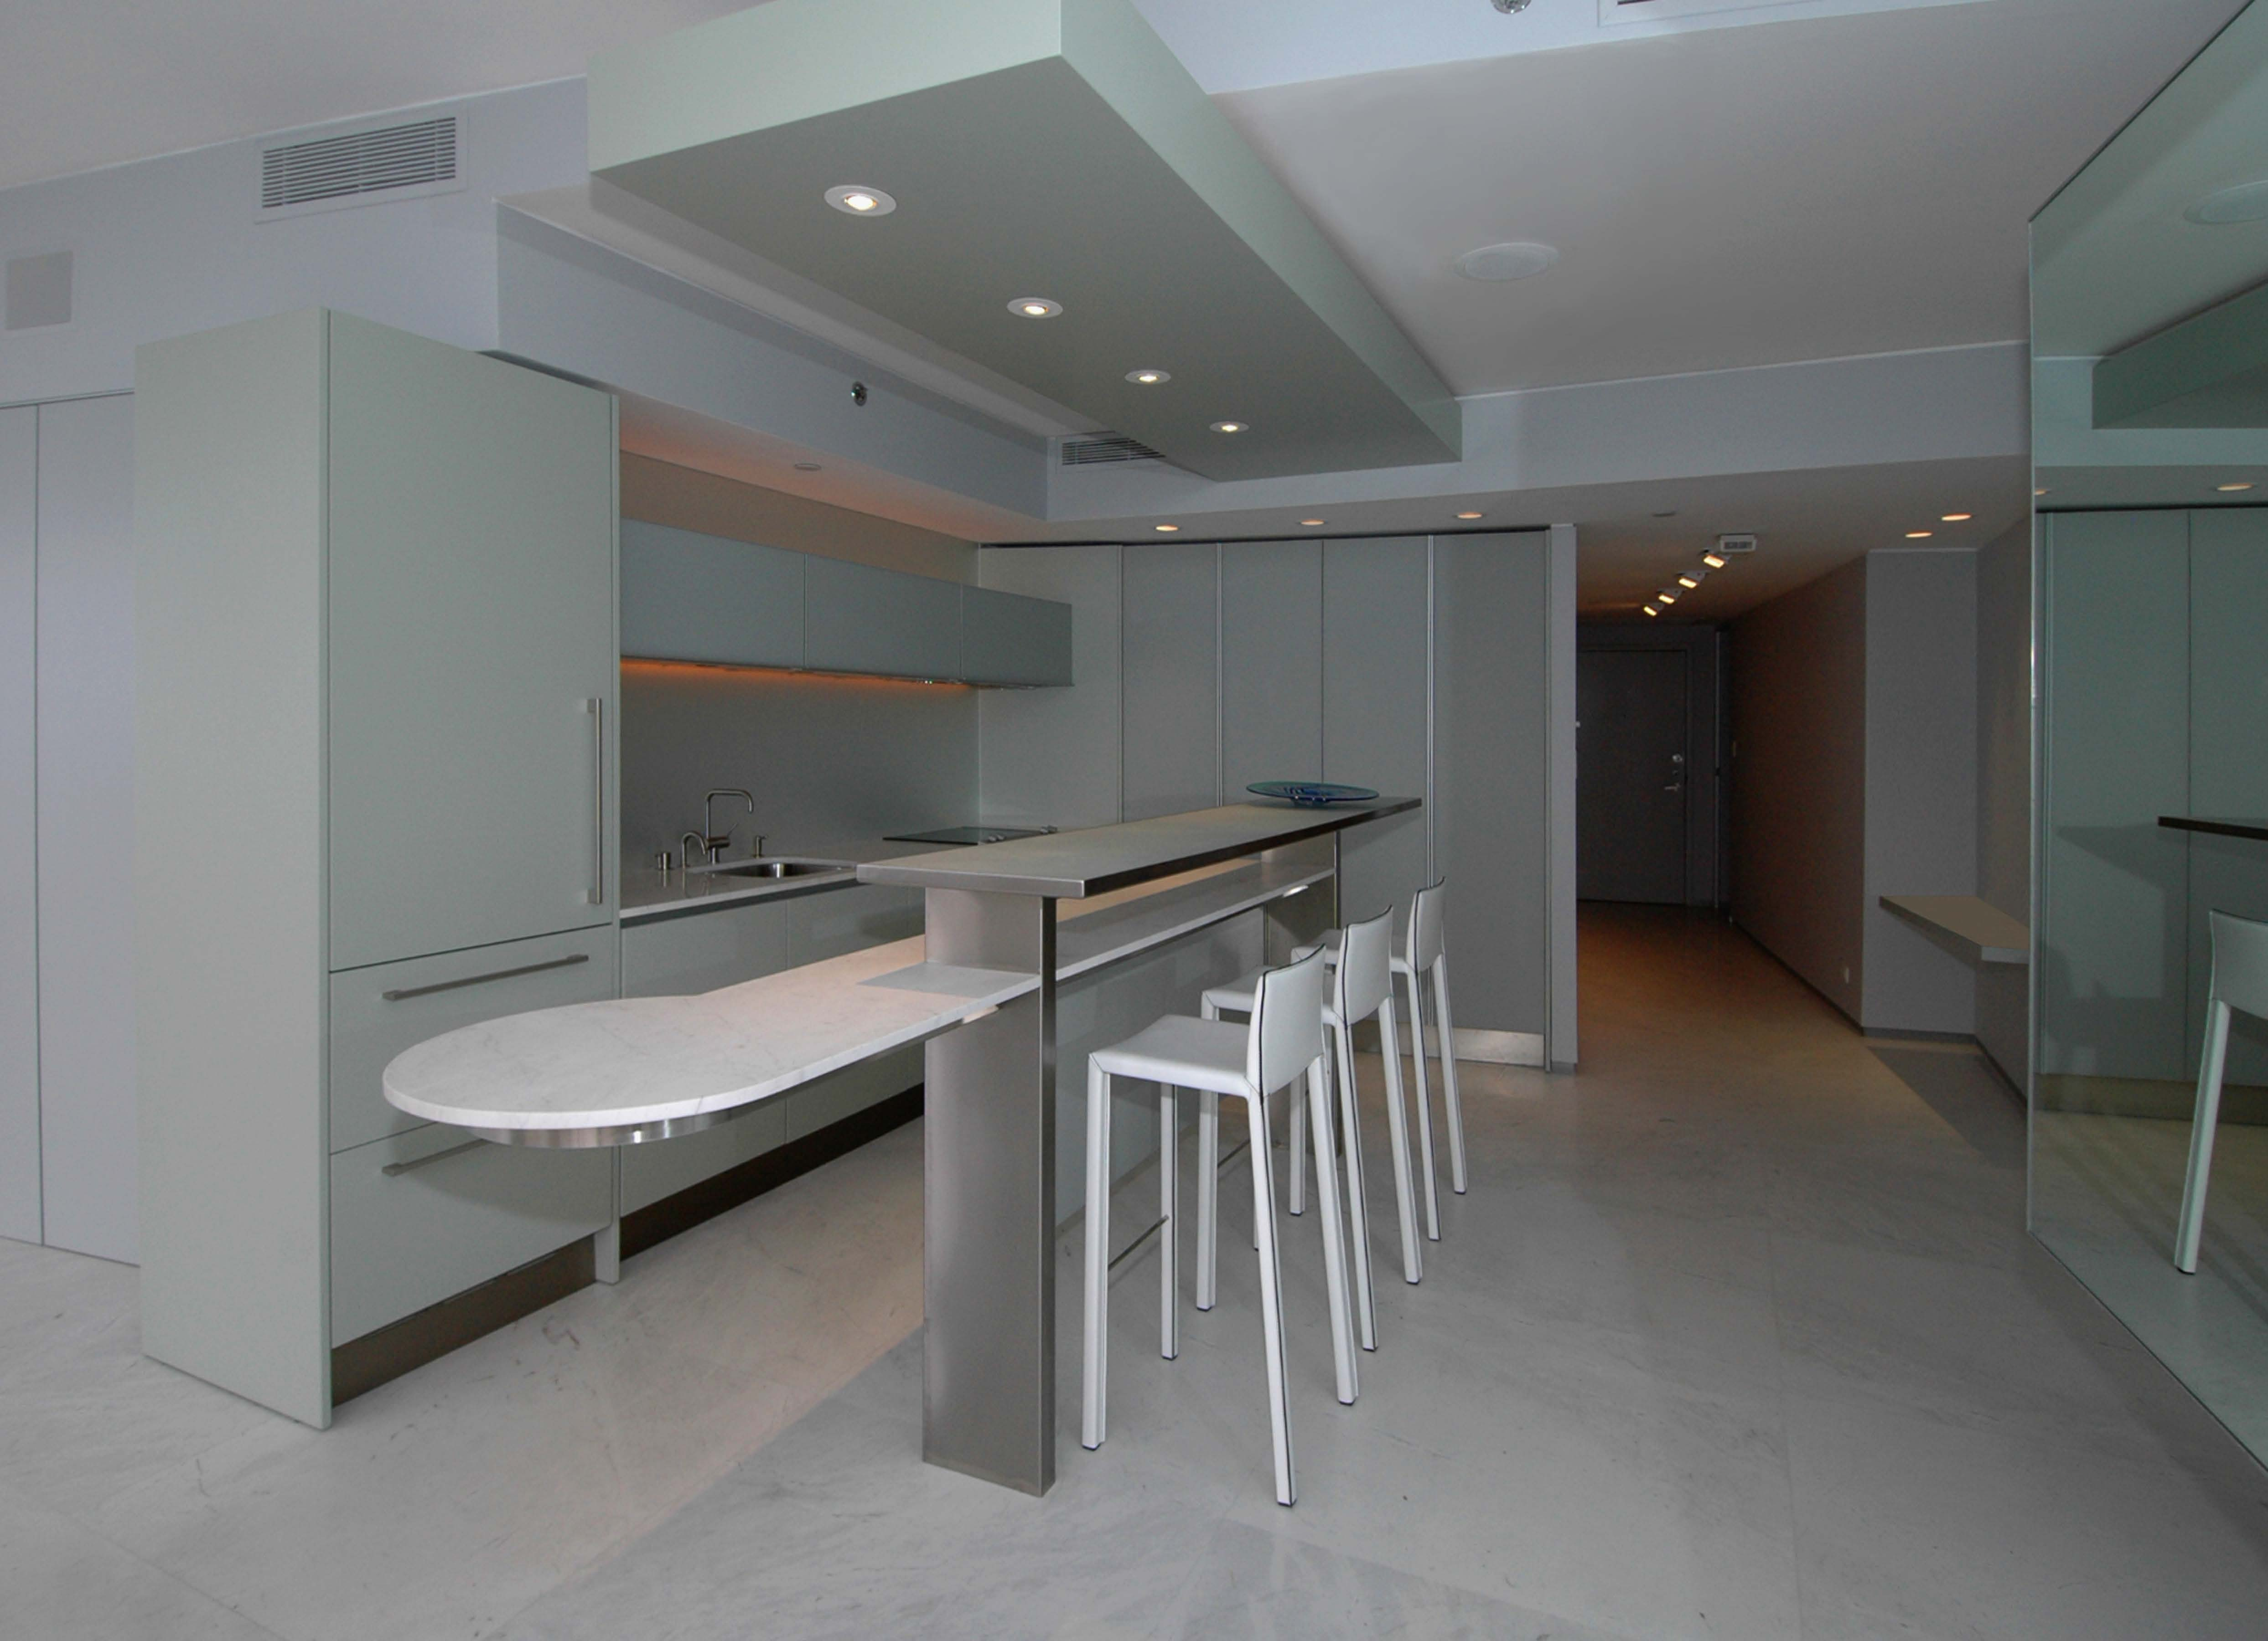 Miami Penthouse Kitchen From the Dining Area Dan Zaharia